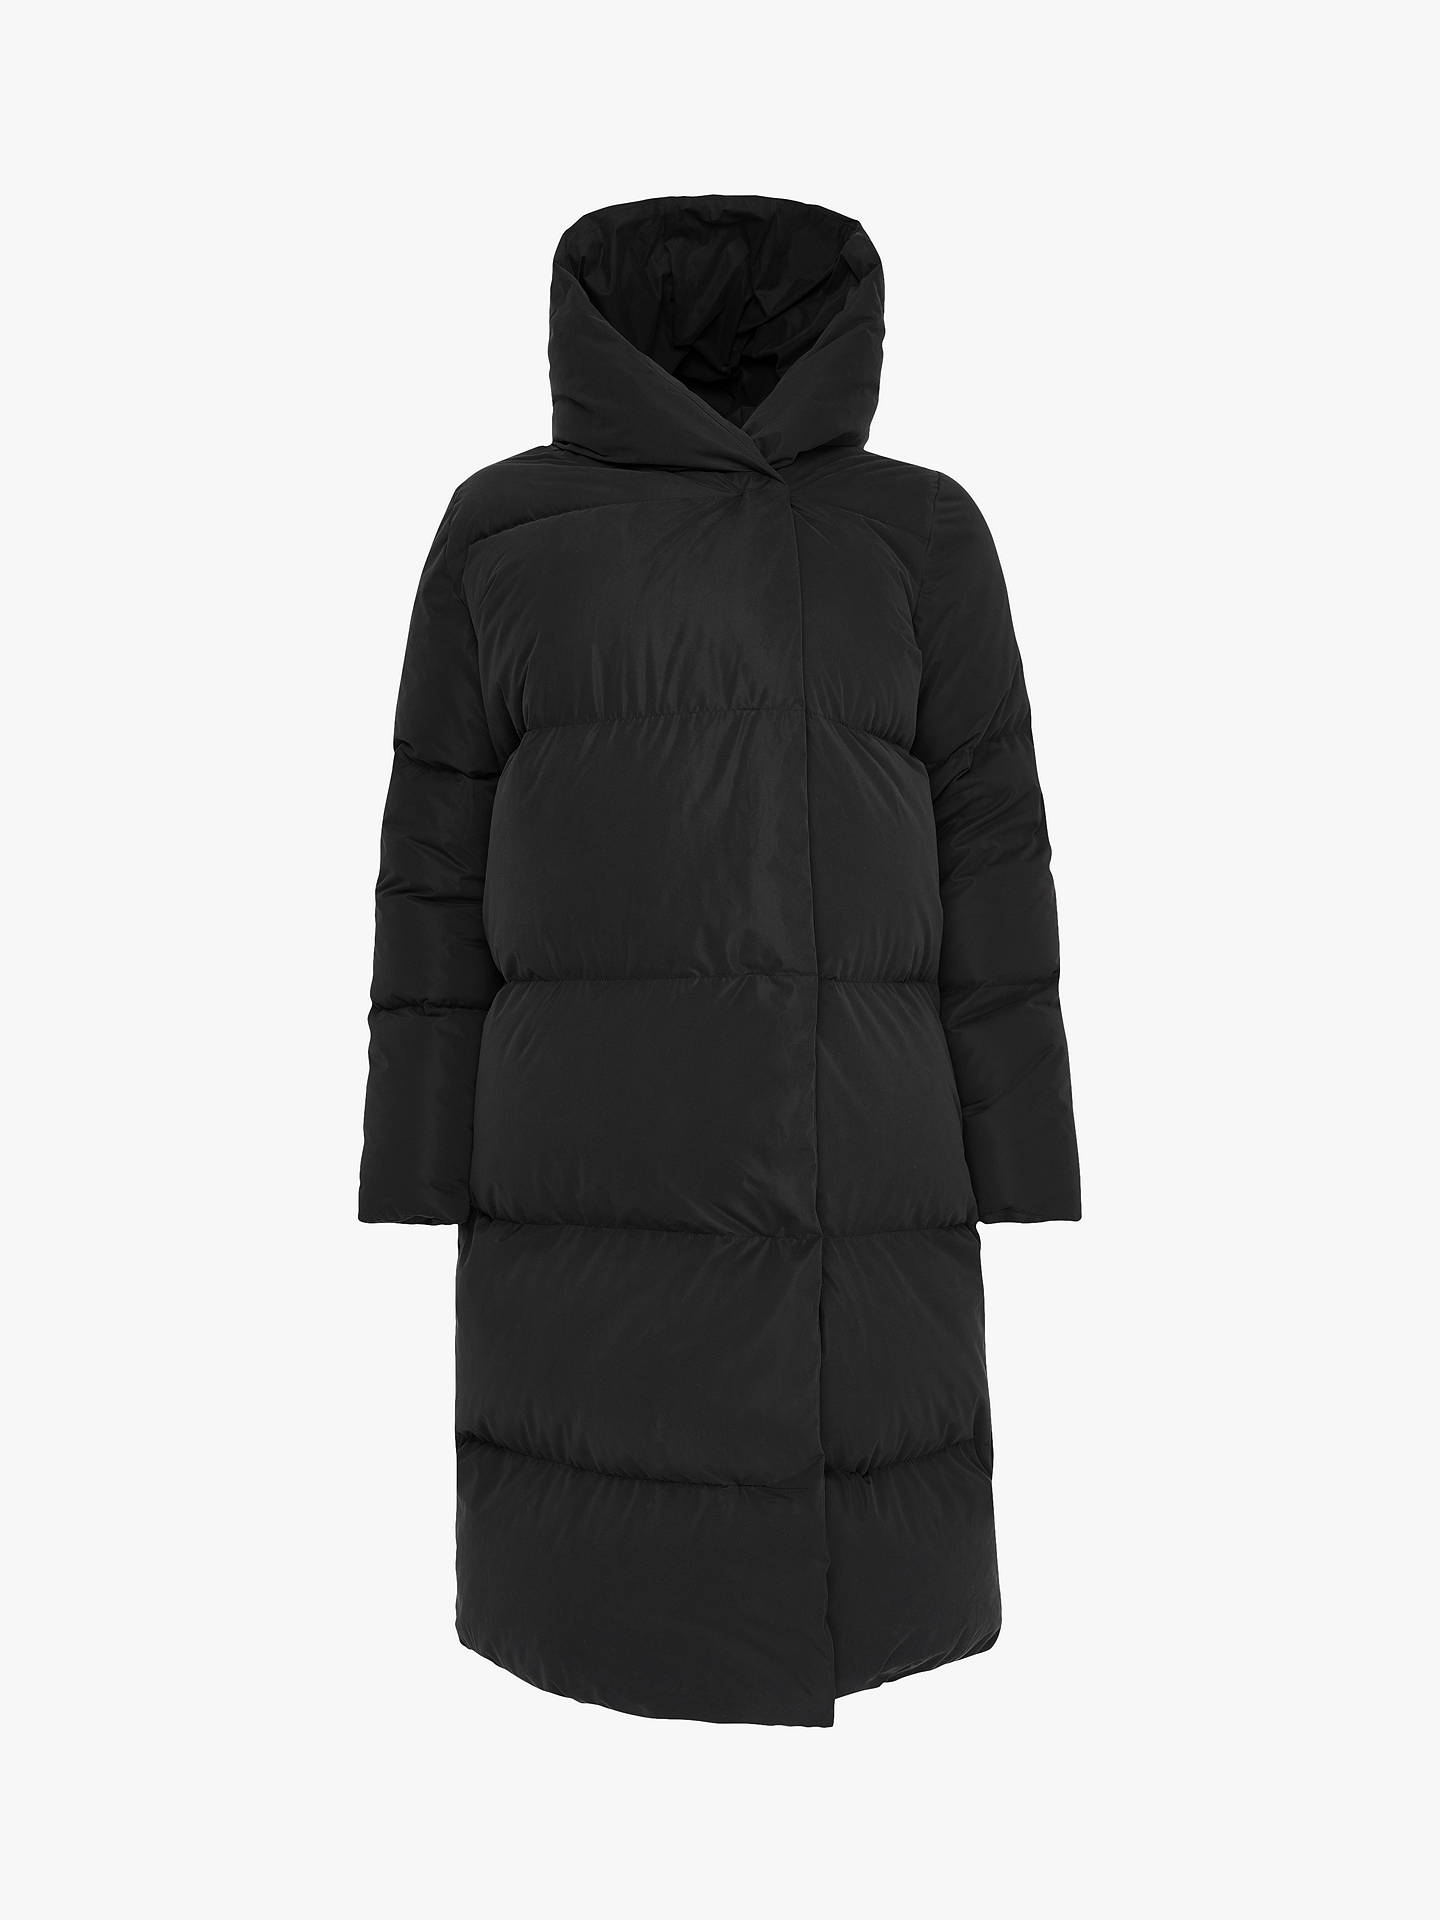 Buy Sweaty Betty Cocoon Padded Jacket, Black, XS Online at johnlewis.com